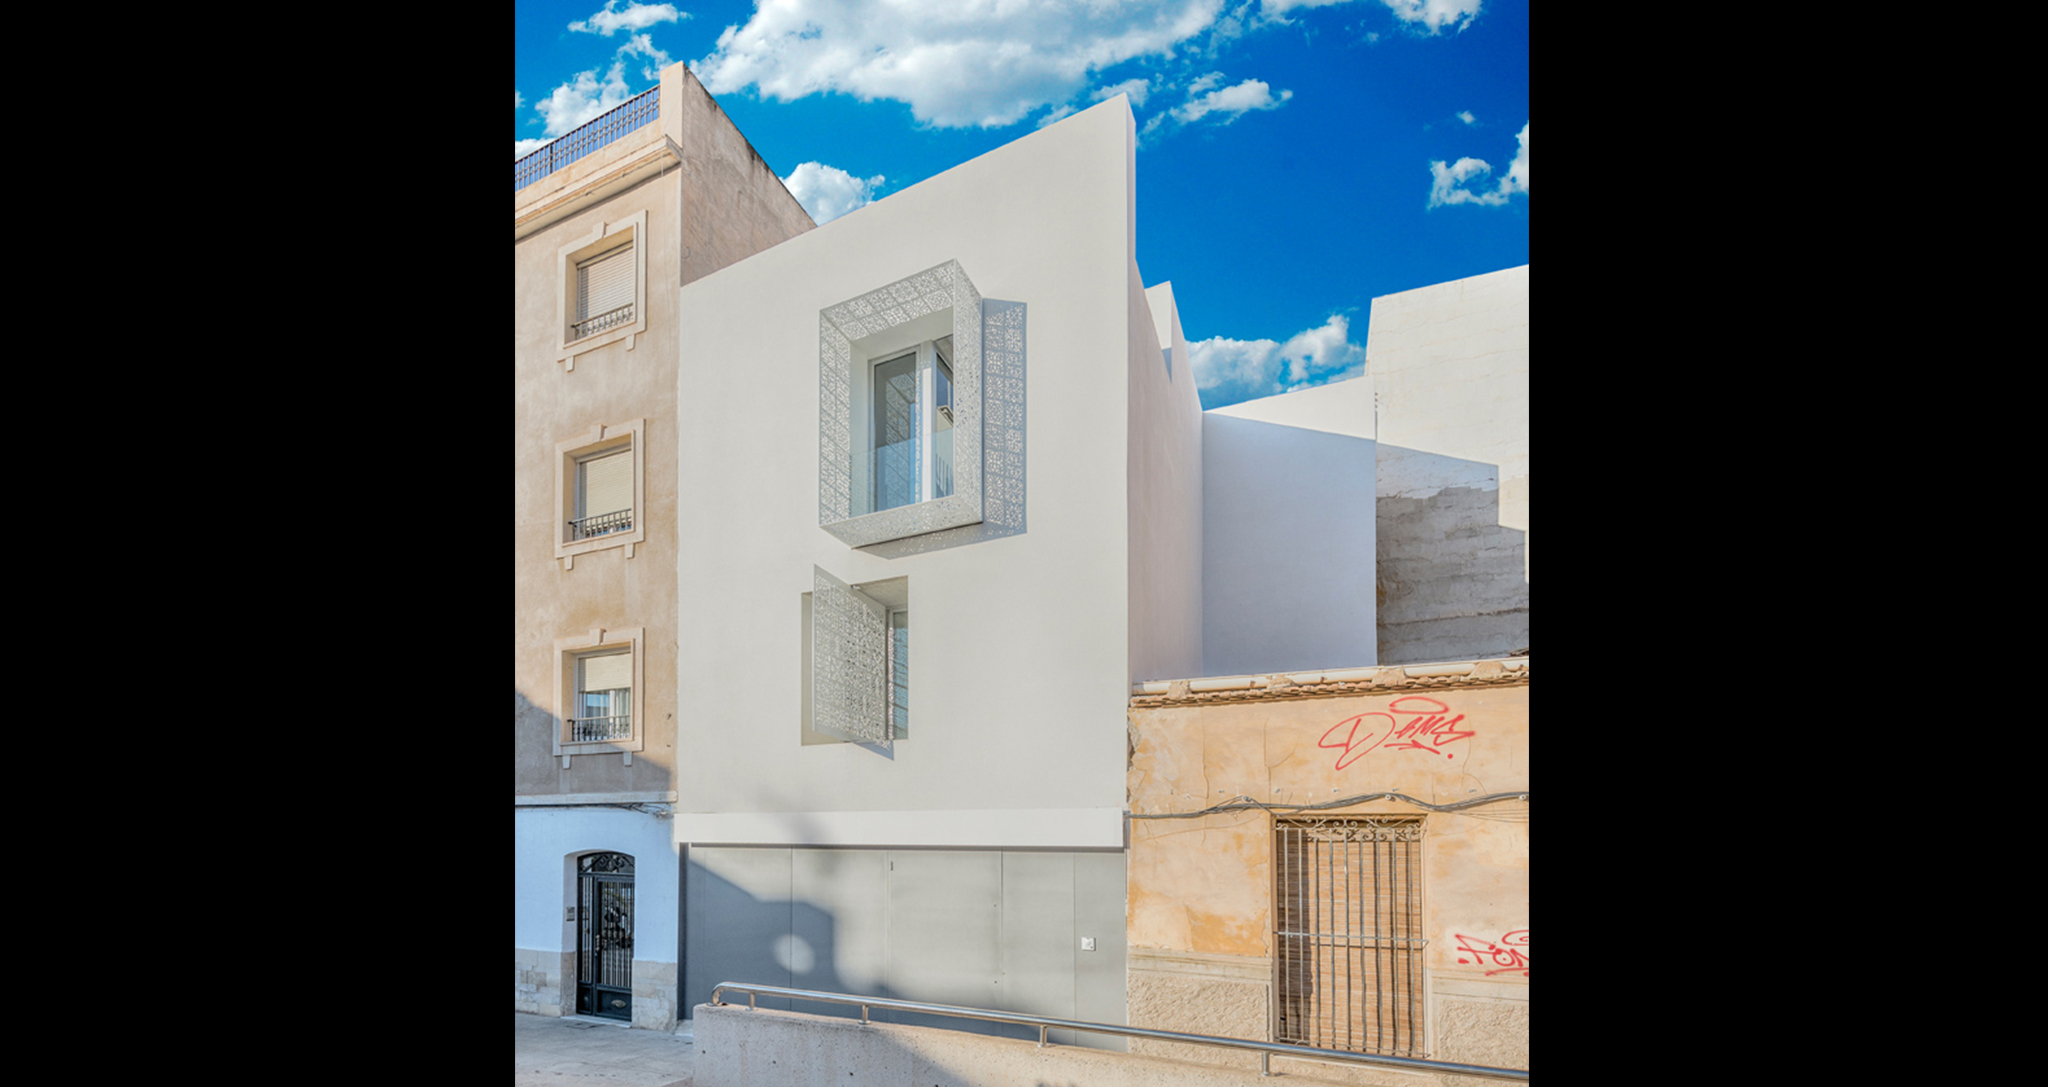 HOUSE CARMEN DESIGN AND CONSTRUCTION OF NEW HOUSE BY ROCAMORA DESIGN AND ARCHITECTURE ELCHE ALICANTE SPAIN